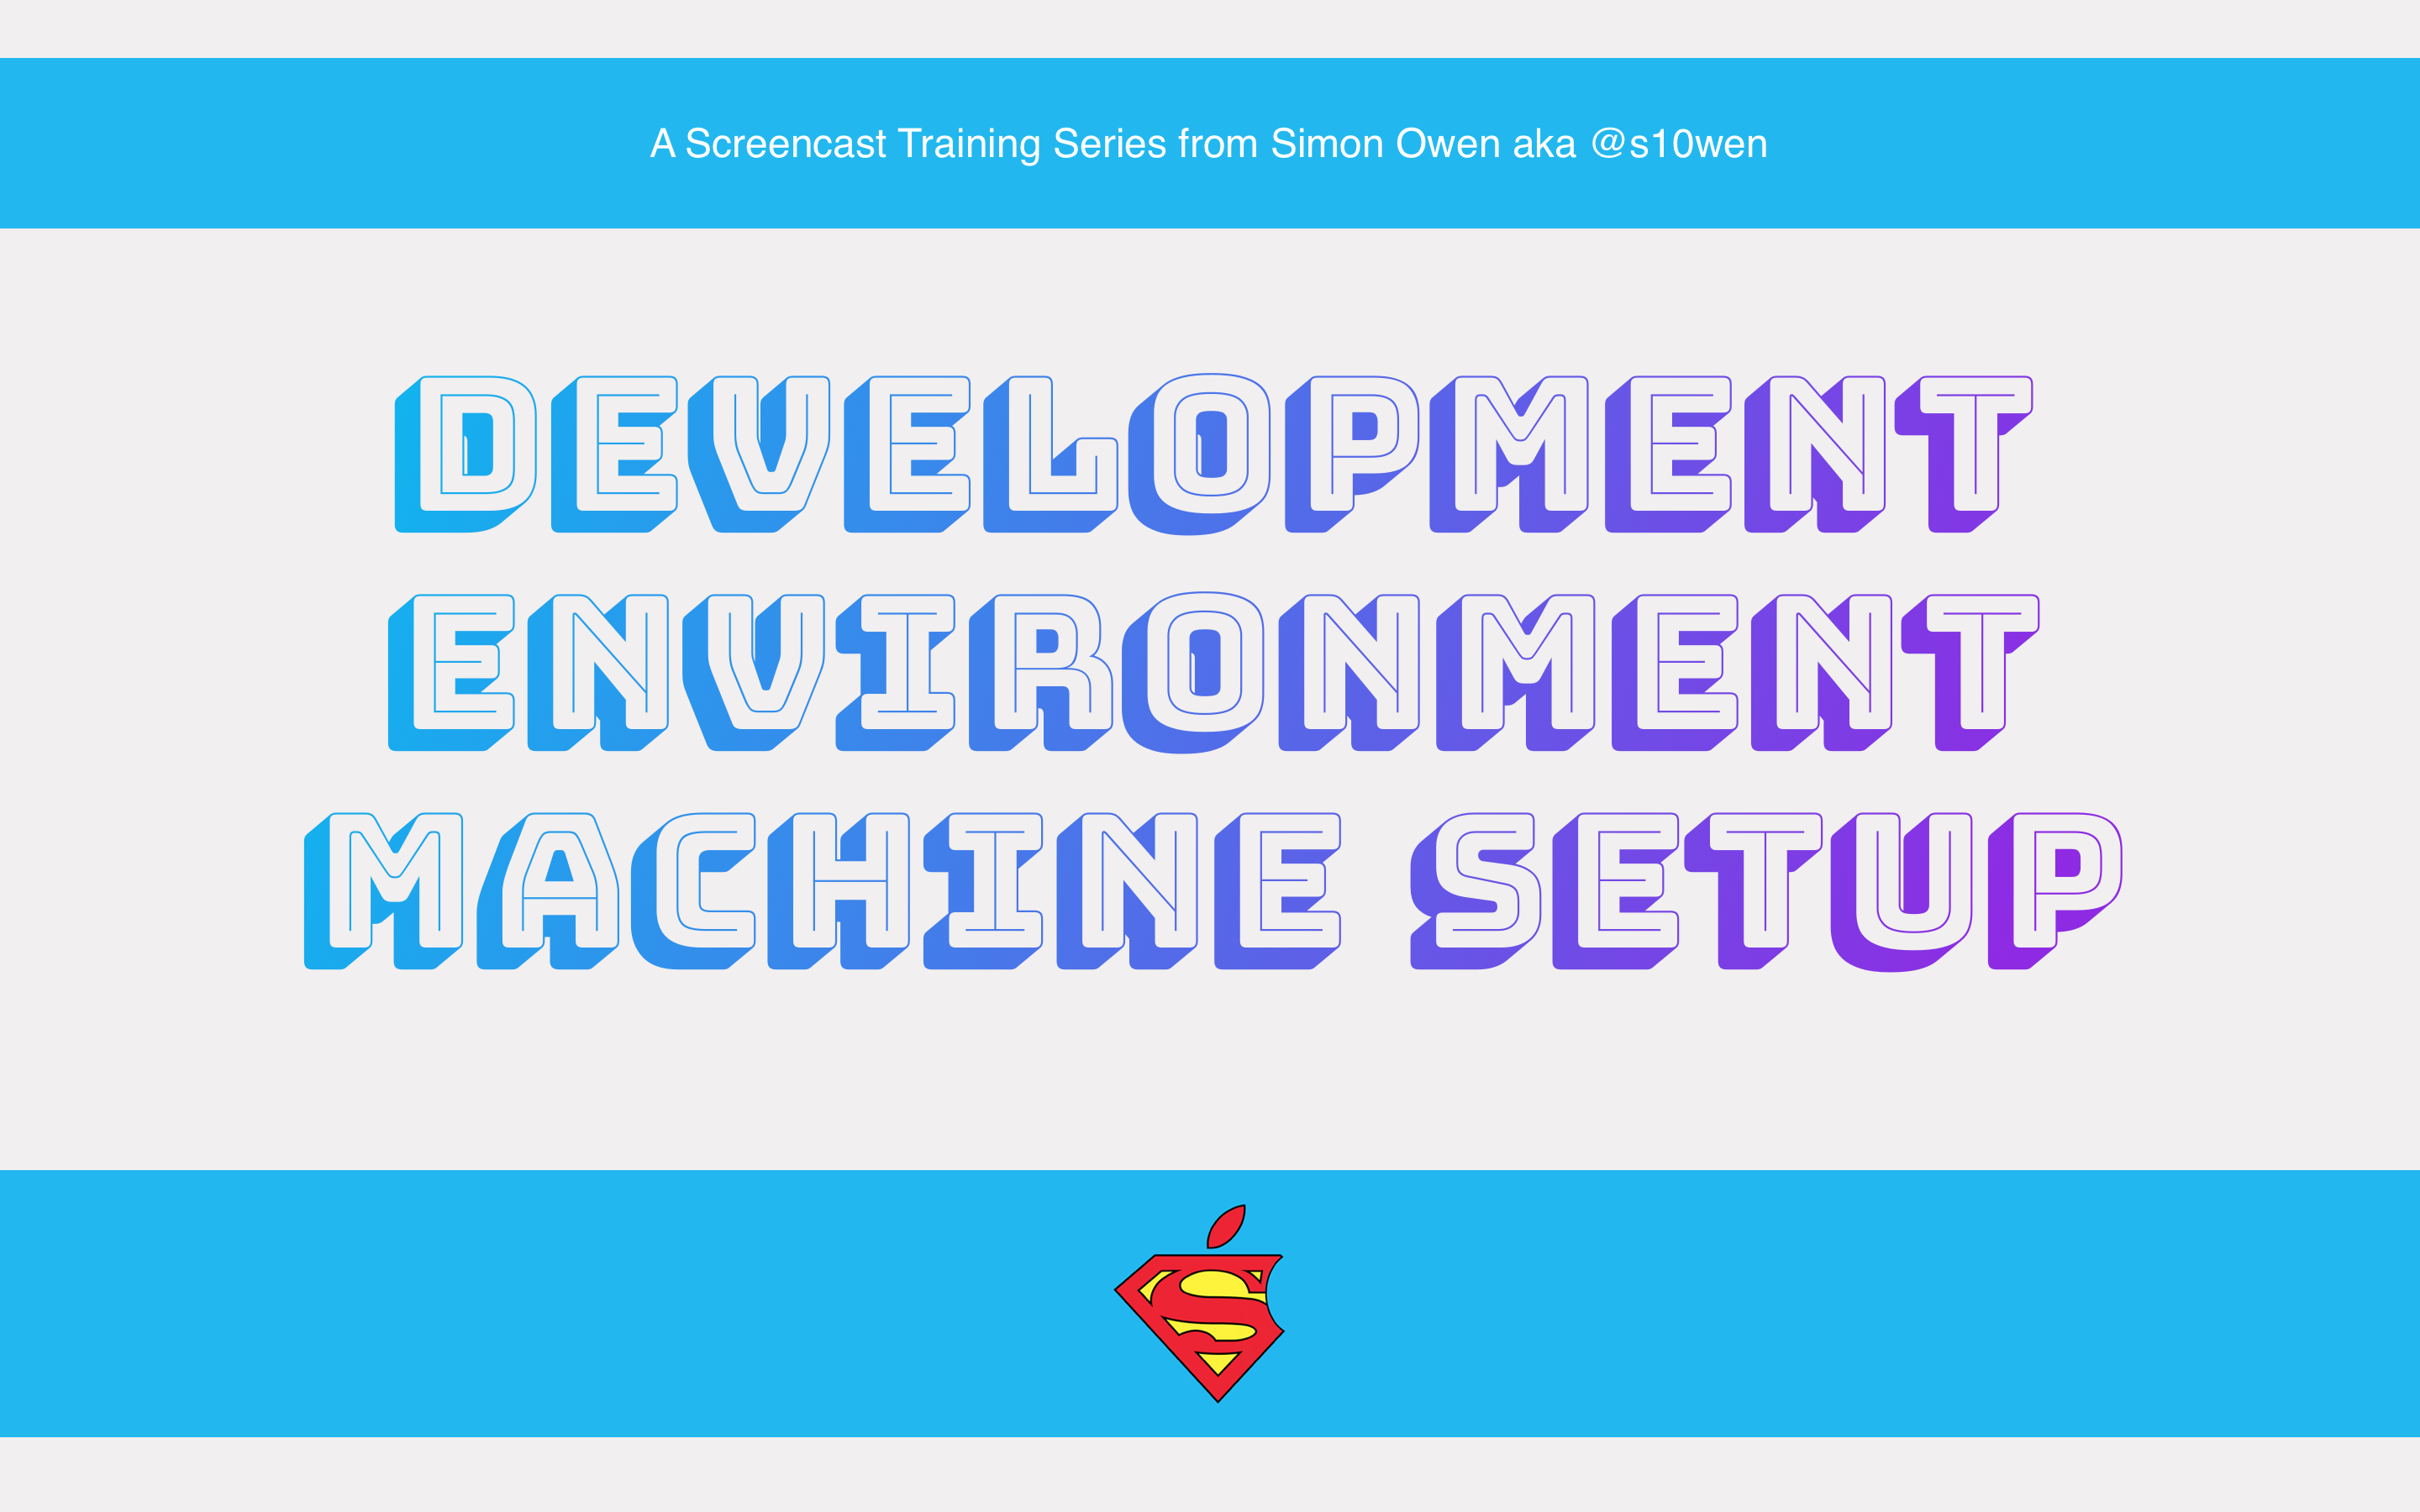 Development Environment Machine Setup